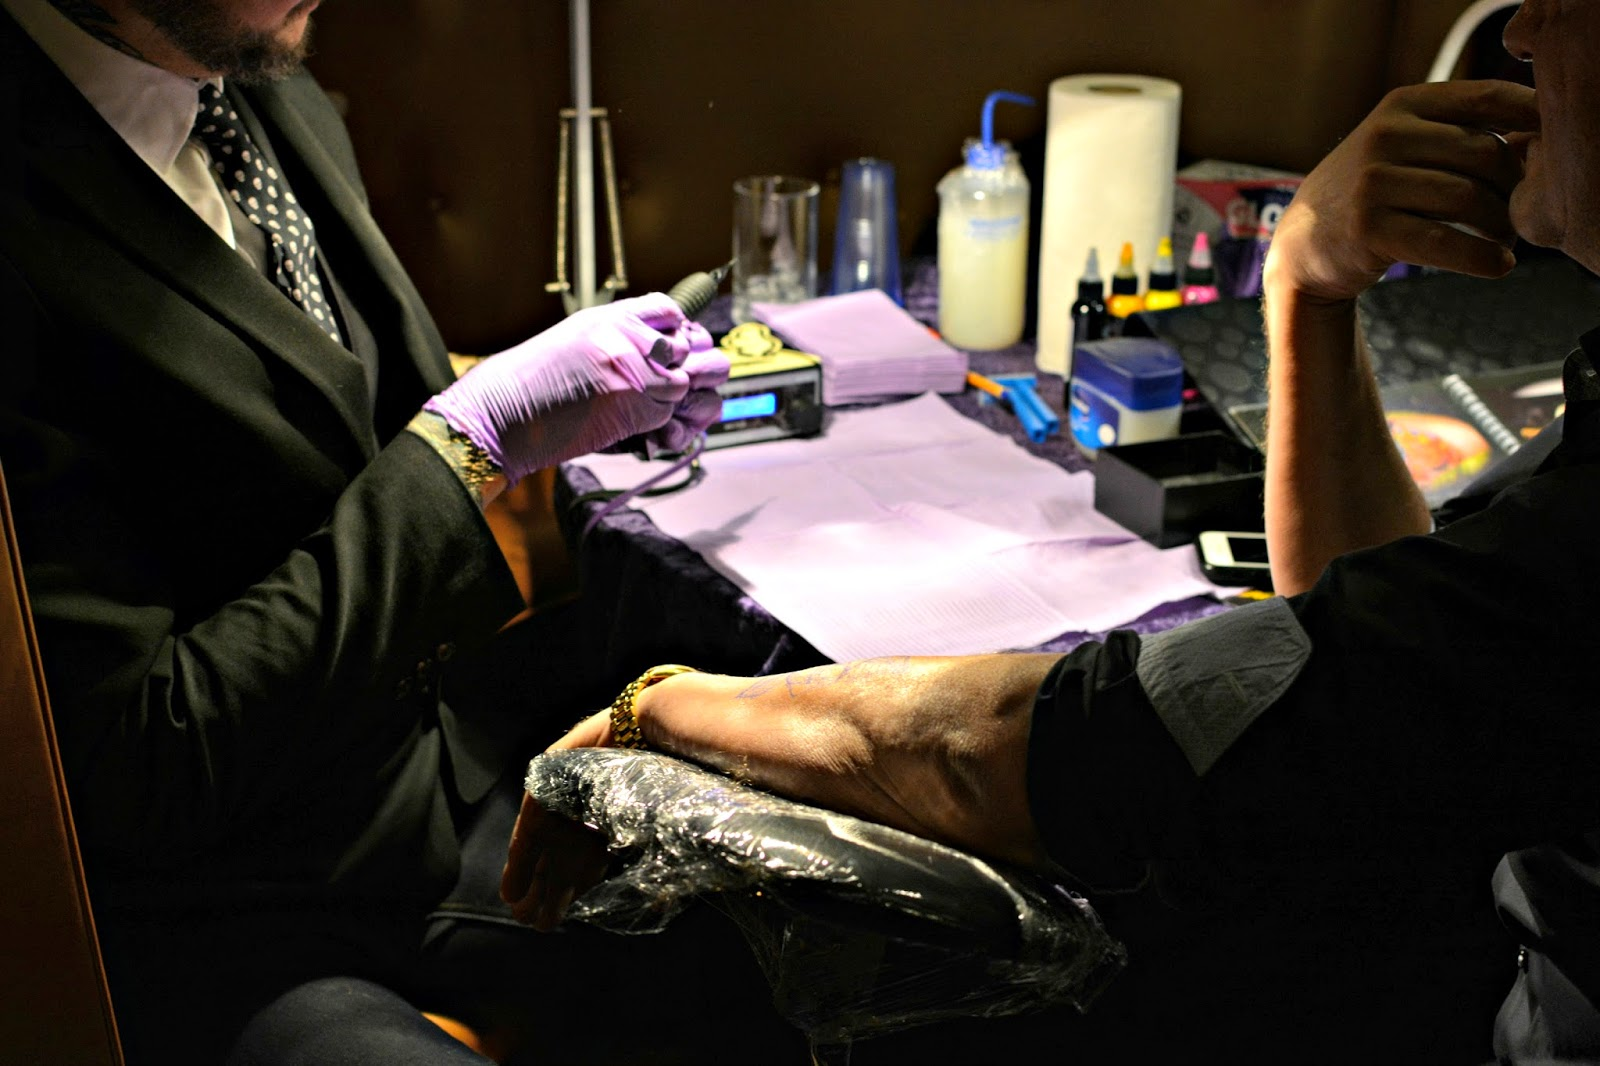 Live tattooist at Sanctum Soho Guirado Design event